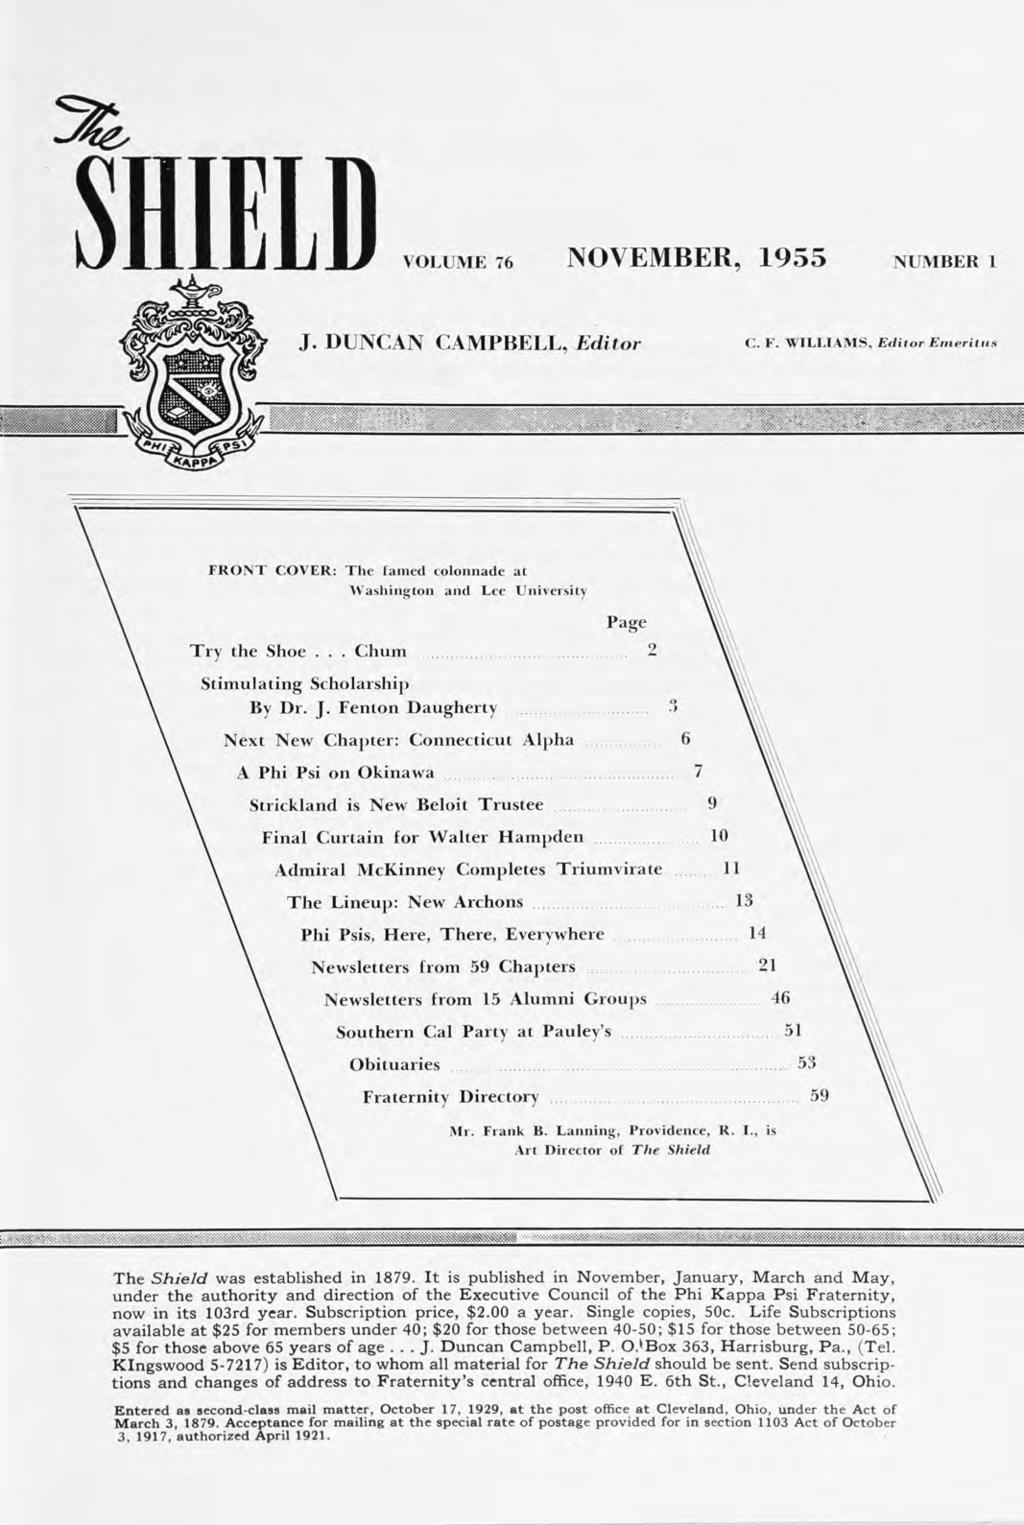 SHIELD VOLUME 76 NOVEMBER, 1955 NUMBER i J. DUNCAN CAMPBELL, Editor C. F. WILLIAMS, Editor Emeriliis FRONT COVER: The famed colonnade at Washington and Lee University Page Try the Shoe.